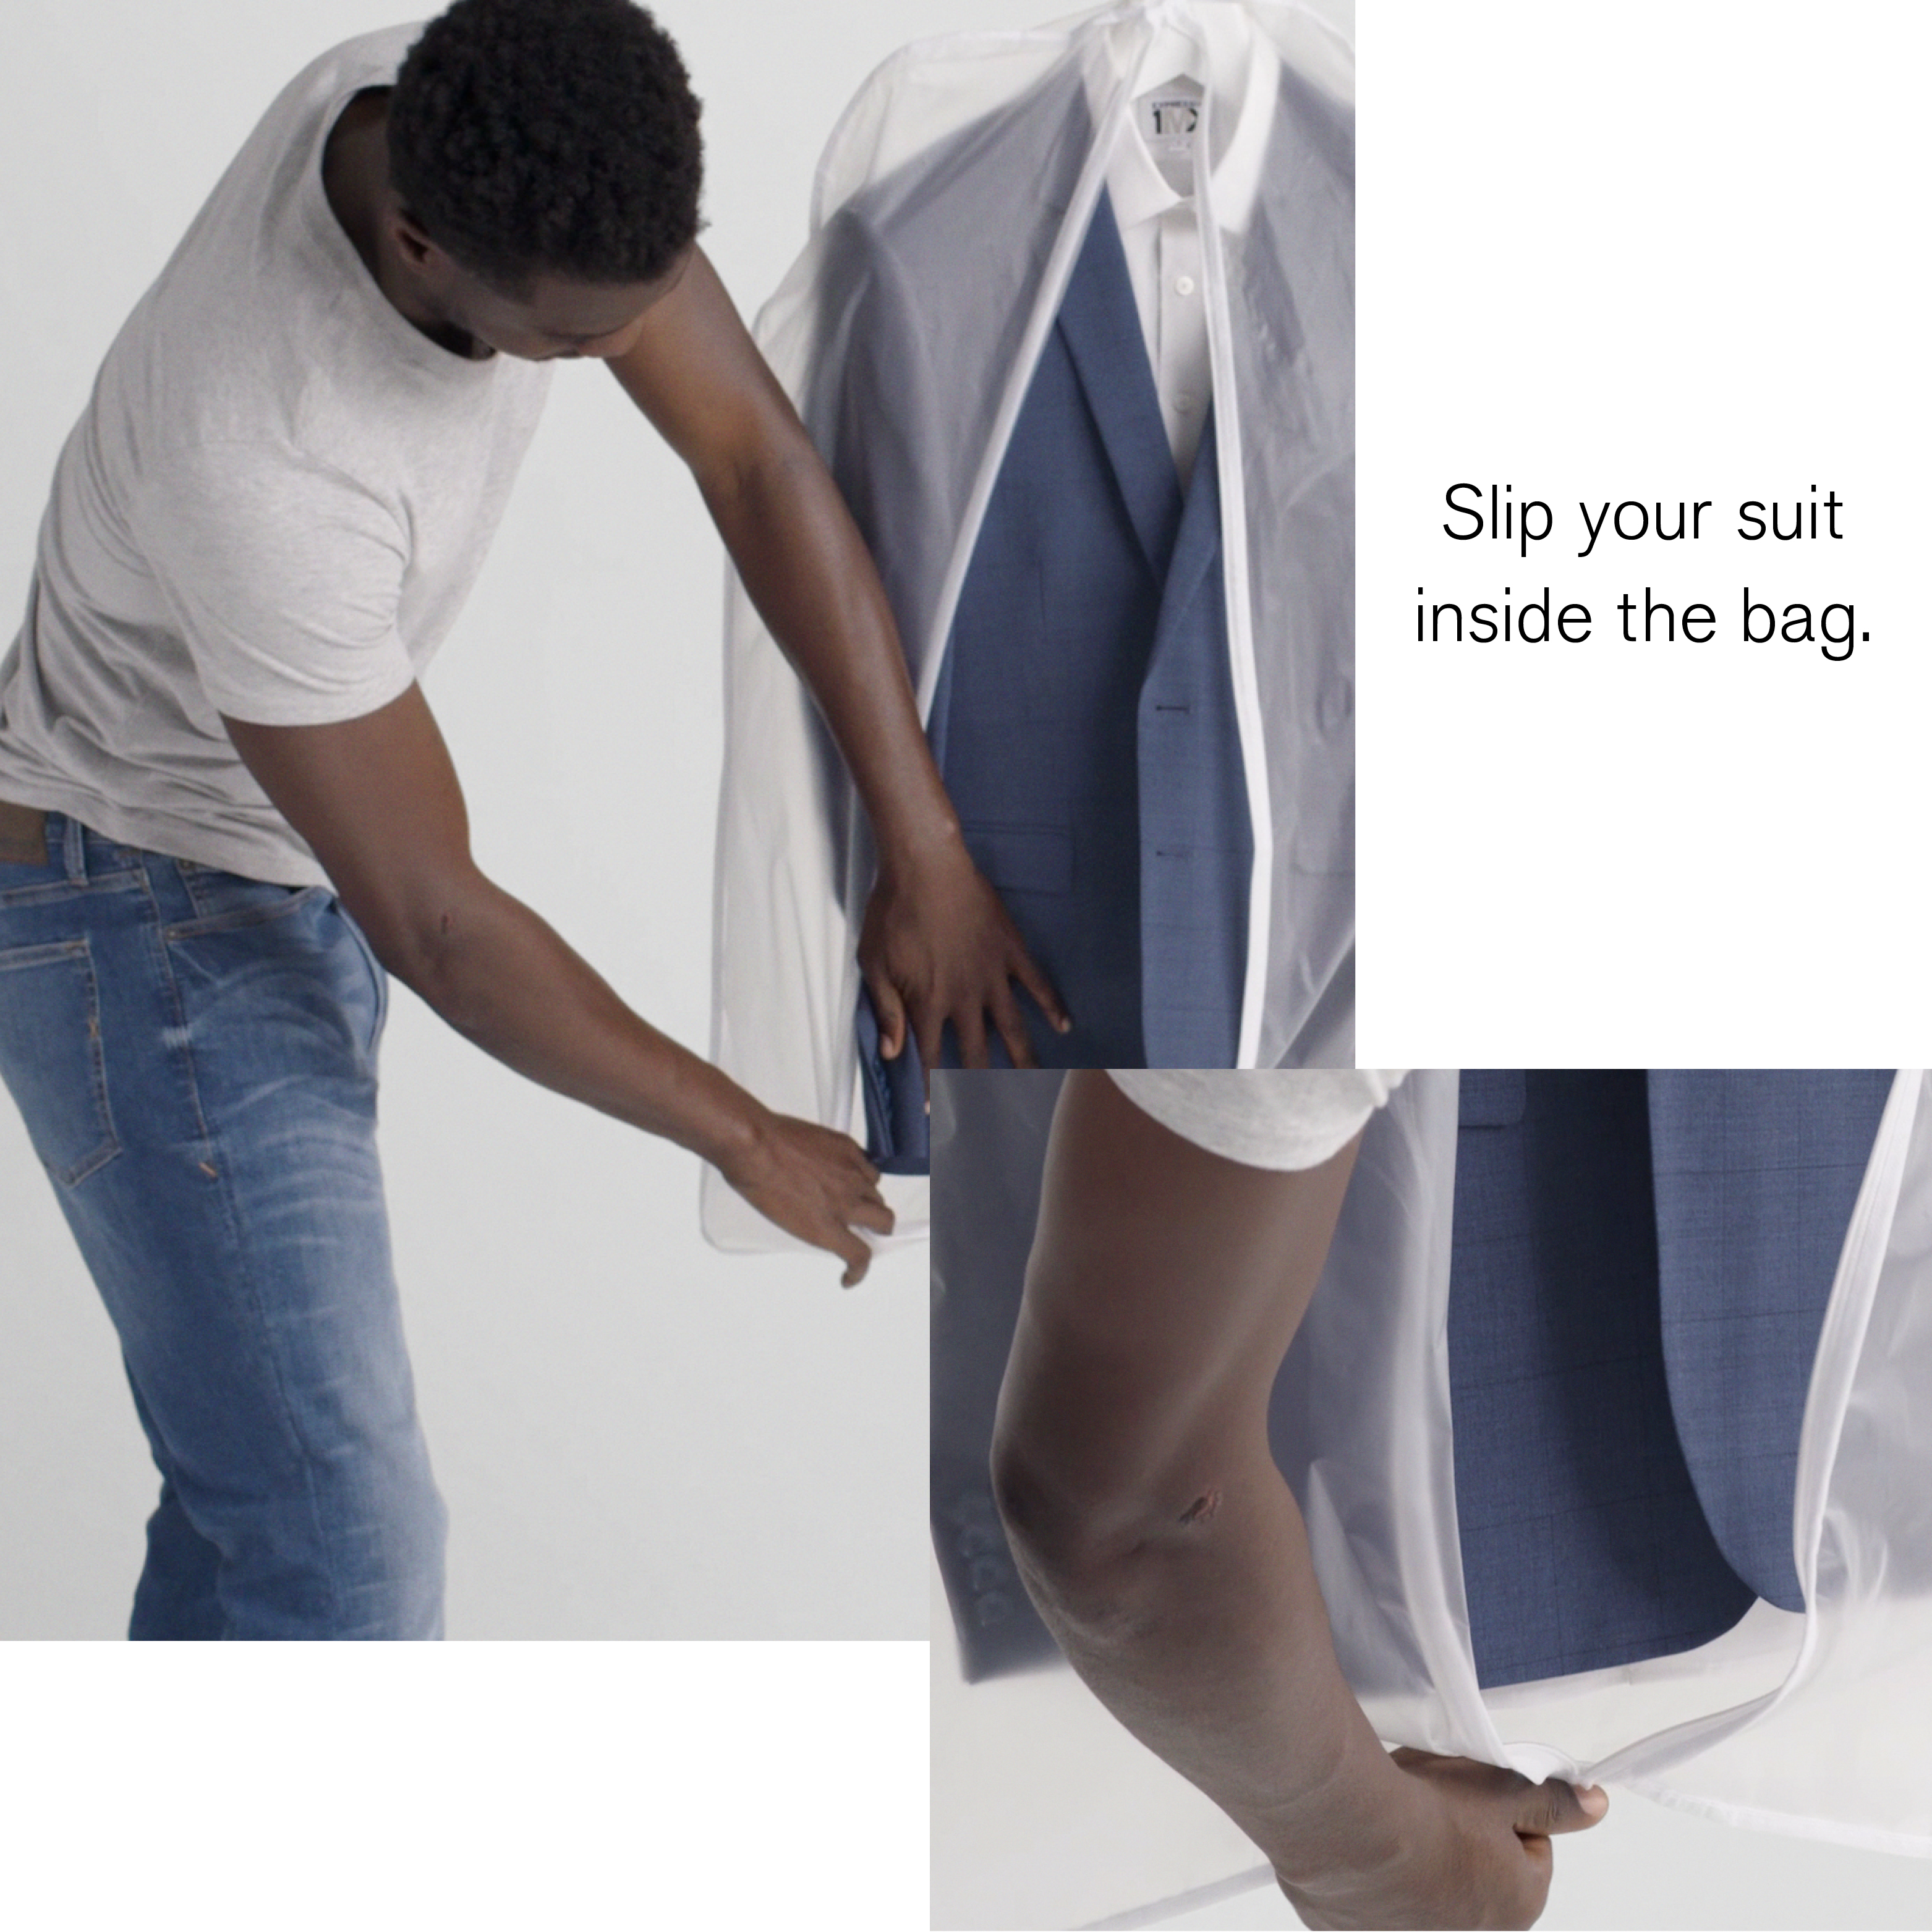 slip-your-suit-inside-the-bag